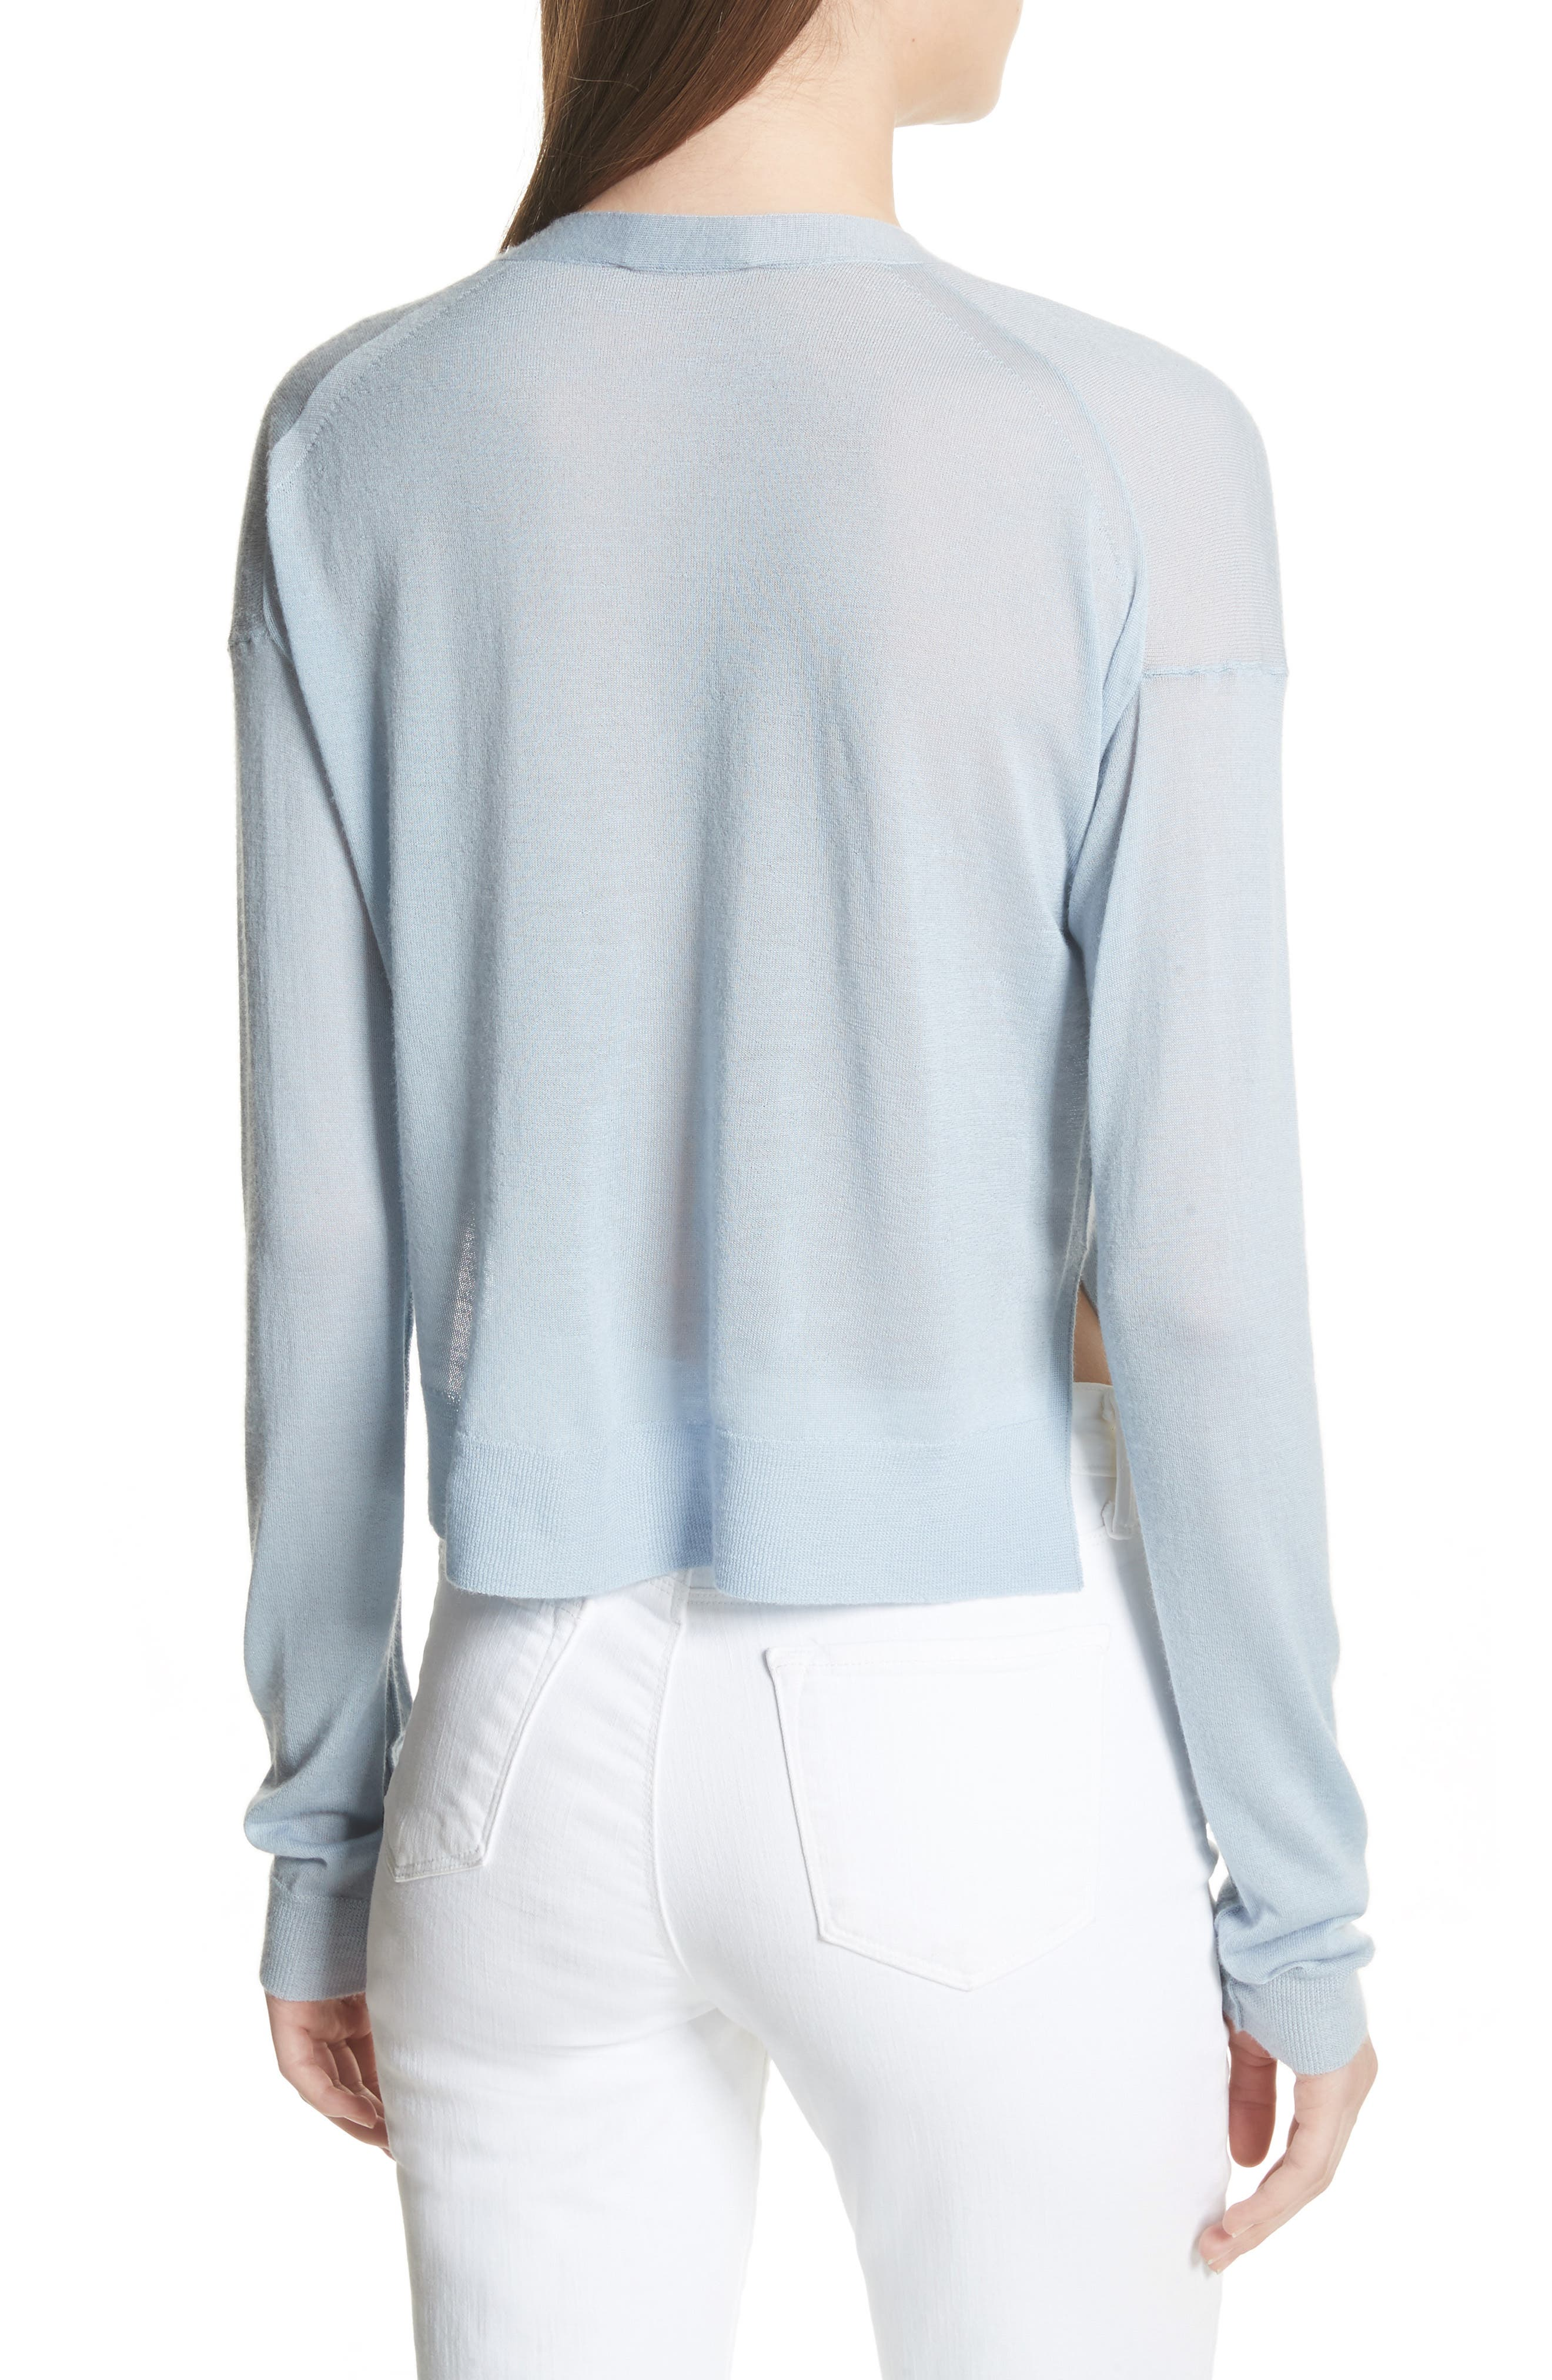 Hanelee Featherweight Cashmere Cardigan,                             Alternate thumbnail 2, color,                             Baby Bluebell